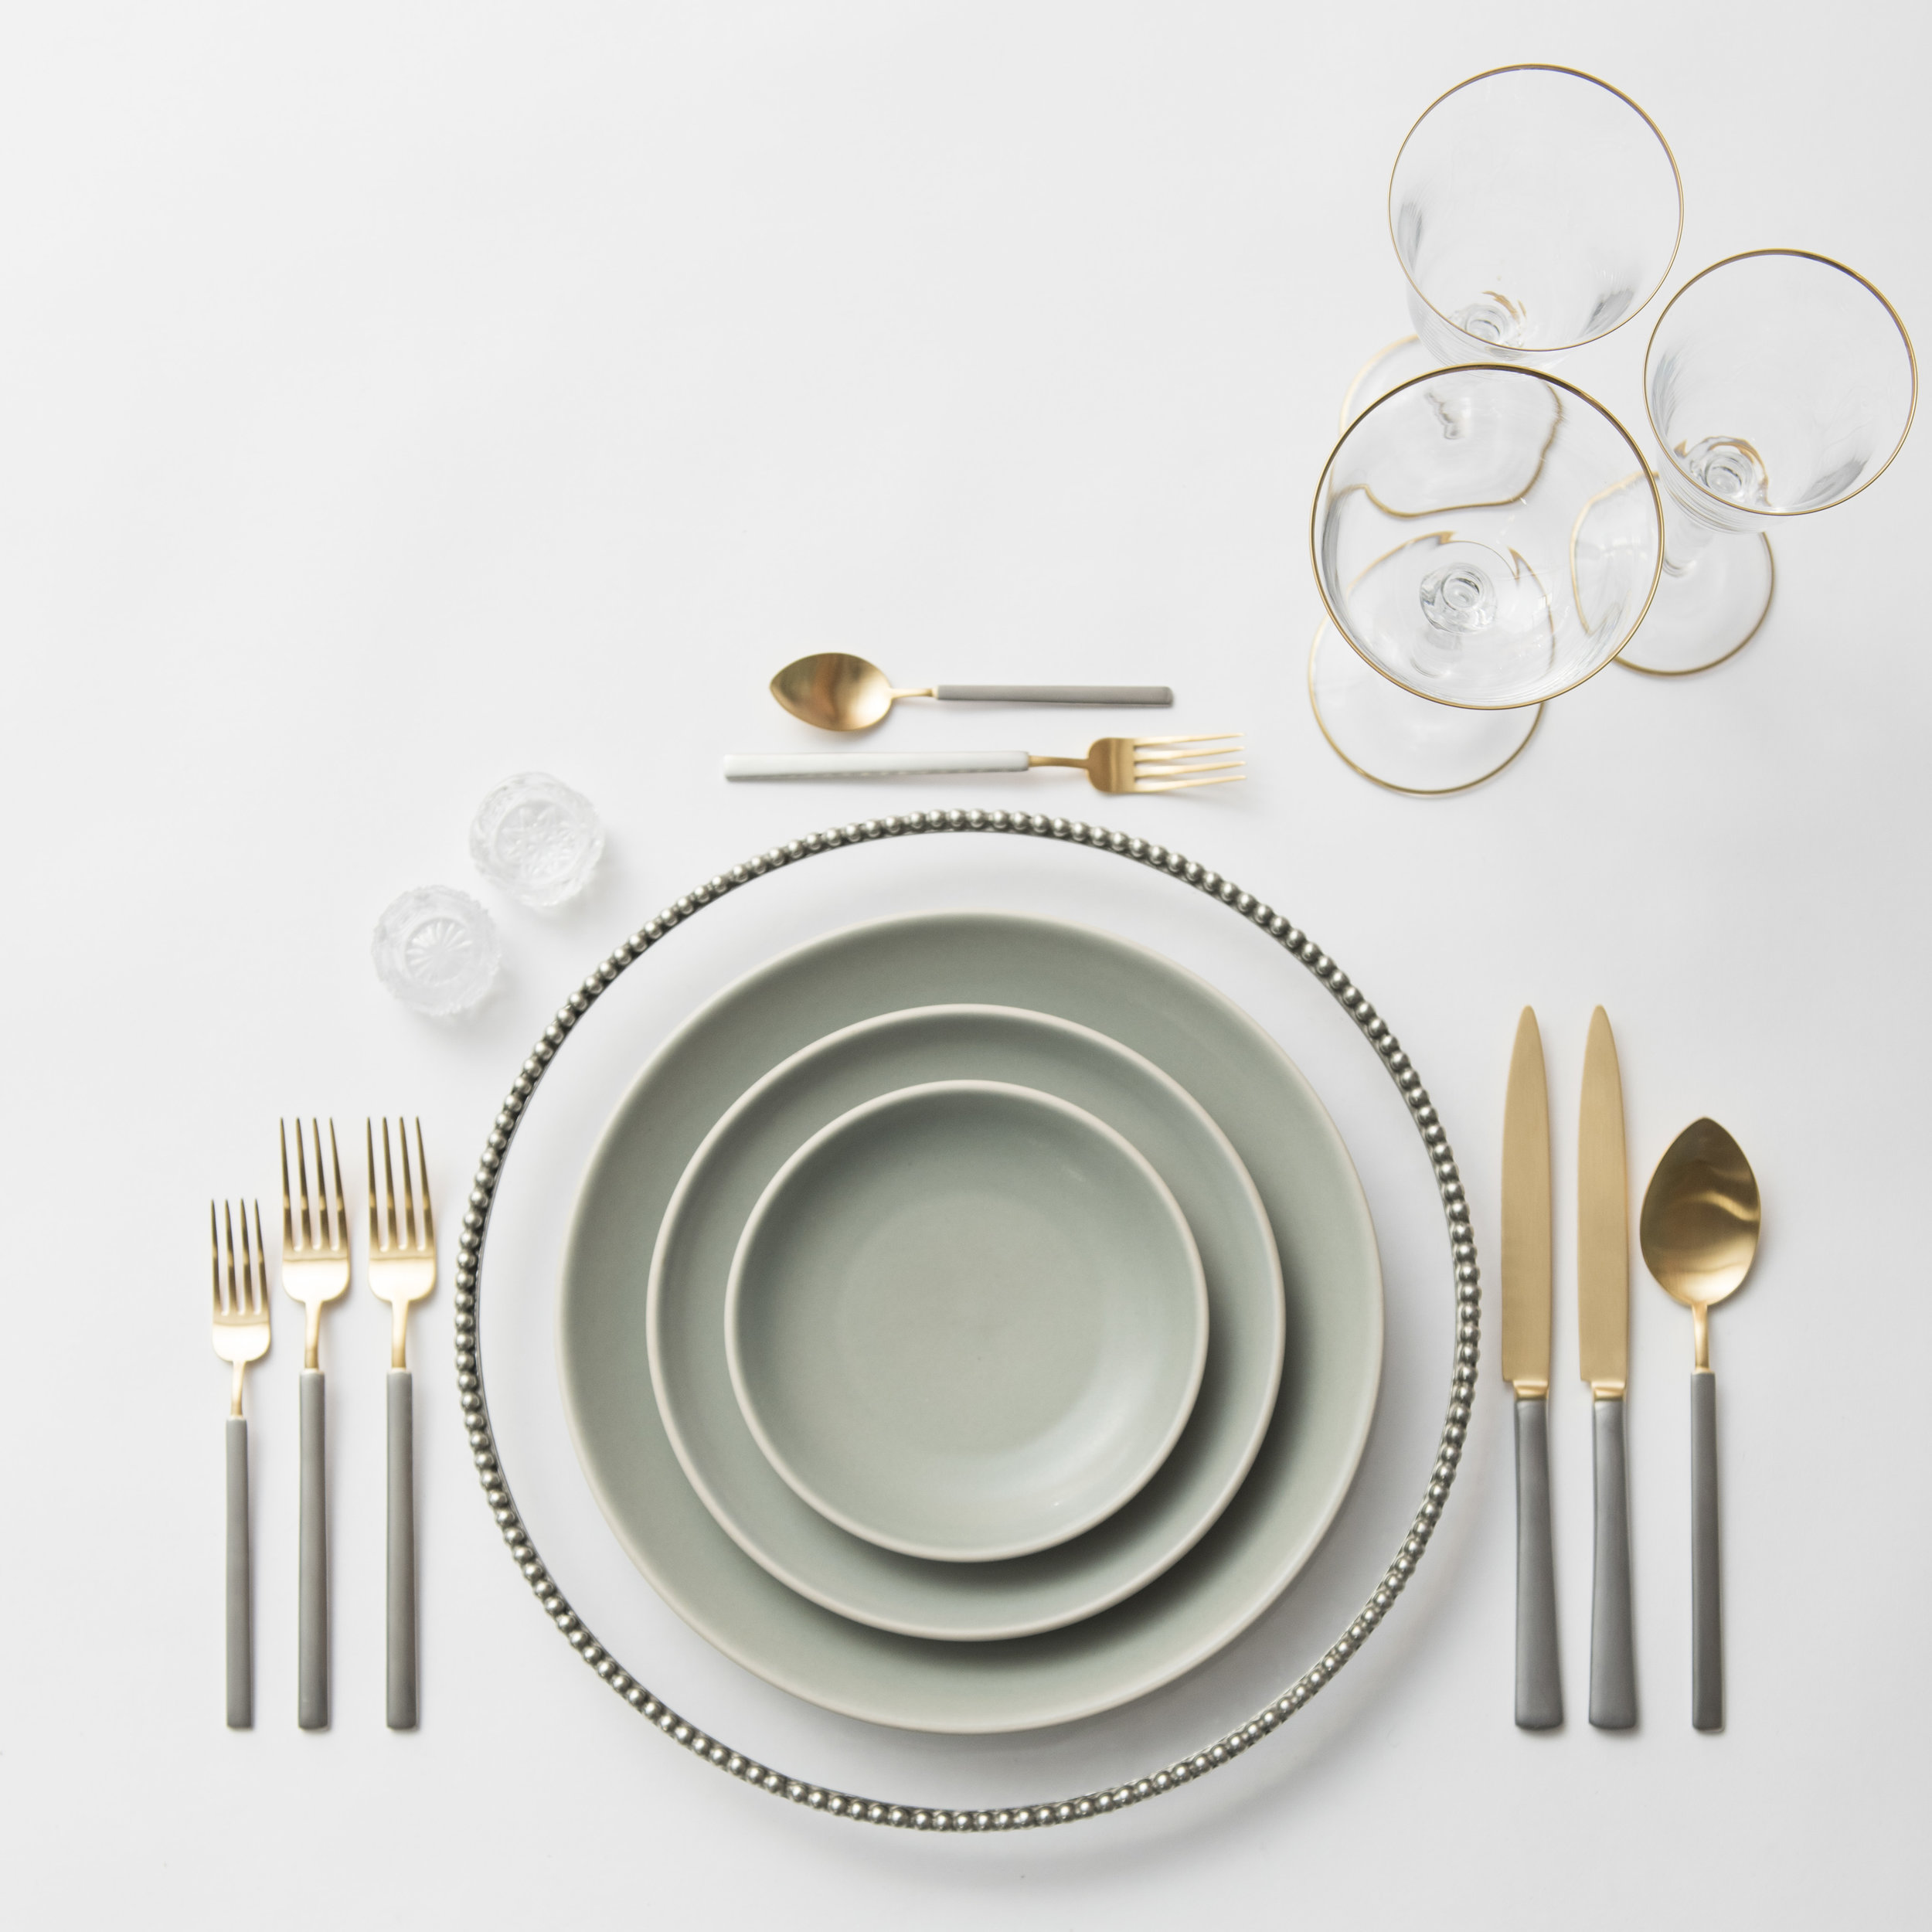 RENT: Pav é Glass Chargers in Pewter + Heath Ceramics in Mist + Axel Flatware in Matte 24k Gold/Silver + Chloe 24k Gold Rimmed Stemware + Antique Crystal Salt Cellars  SHOP:Chloe 24k Gold Rimmed Stemware